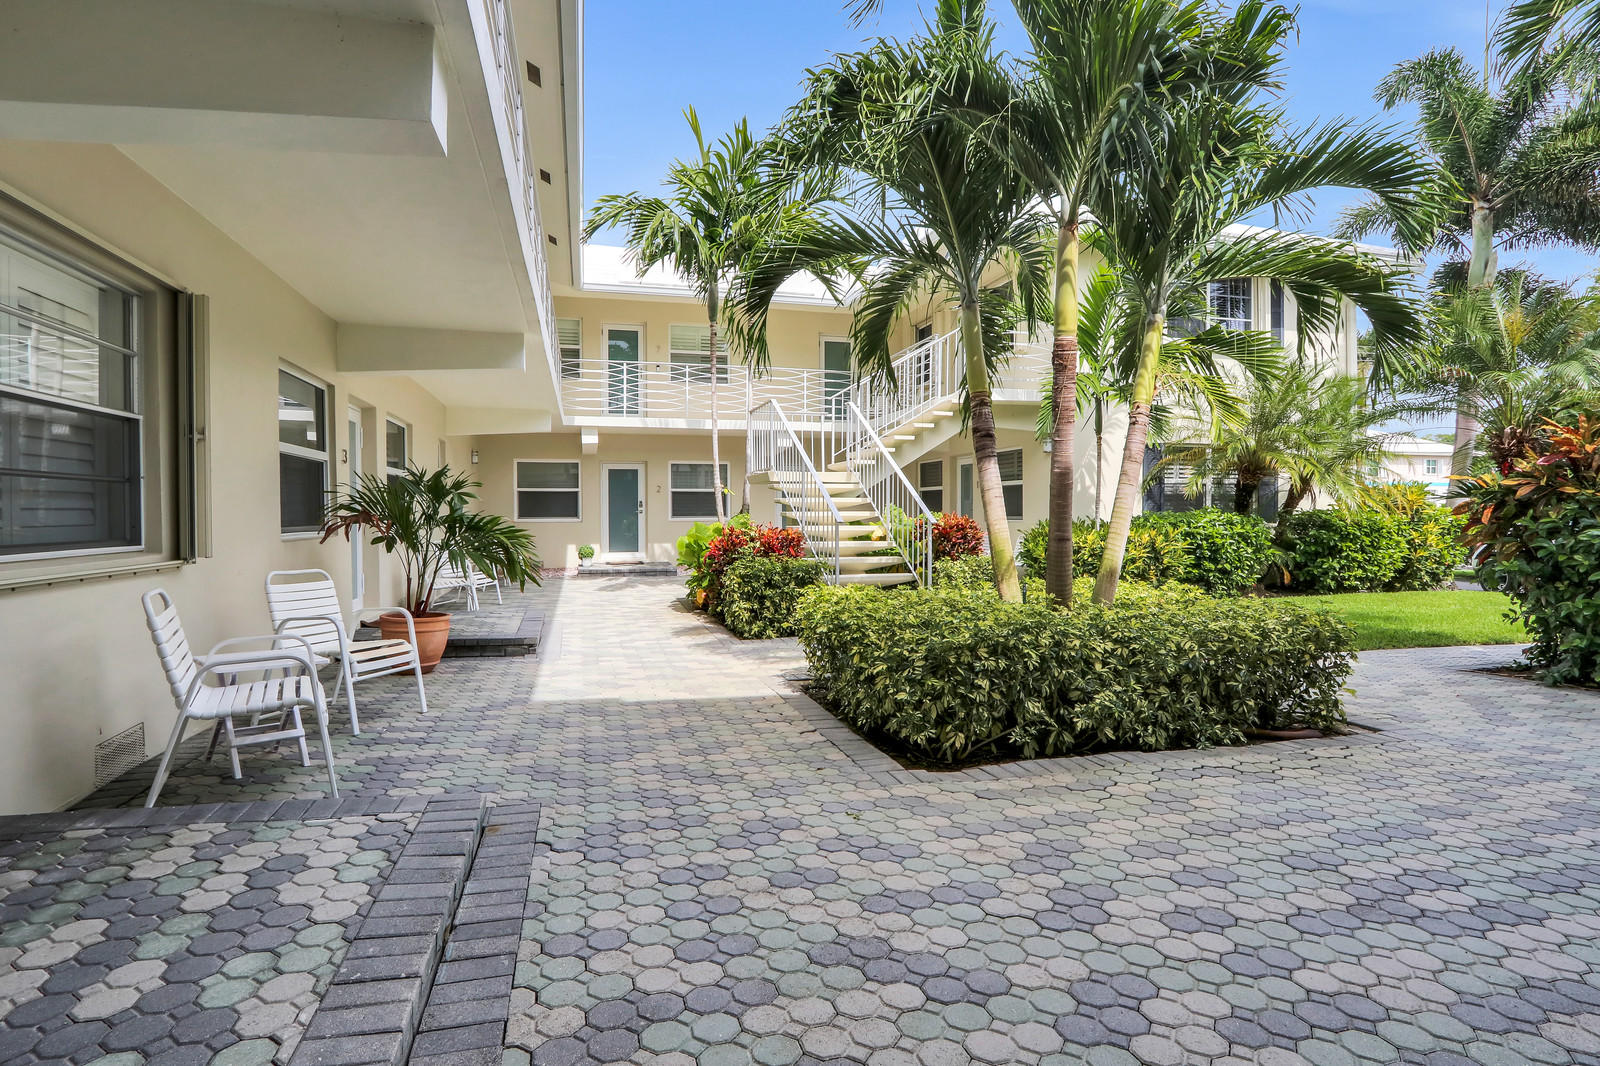 Home for sale in Ranger Delray Beach Florida